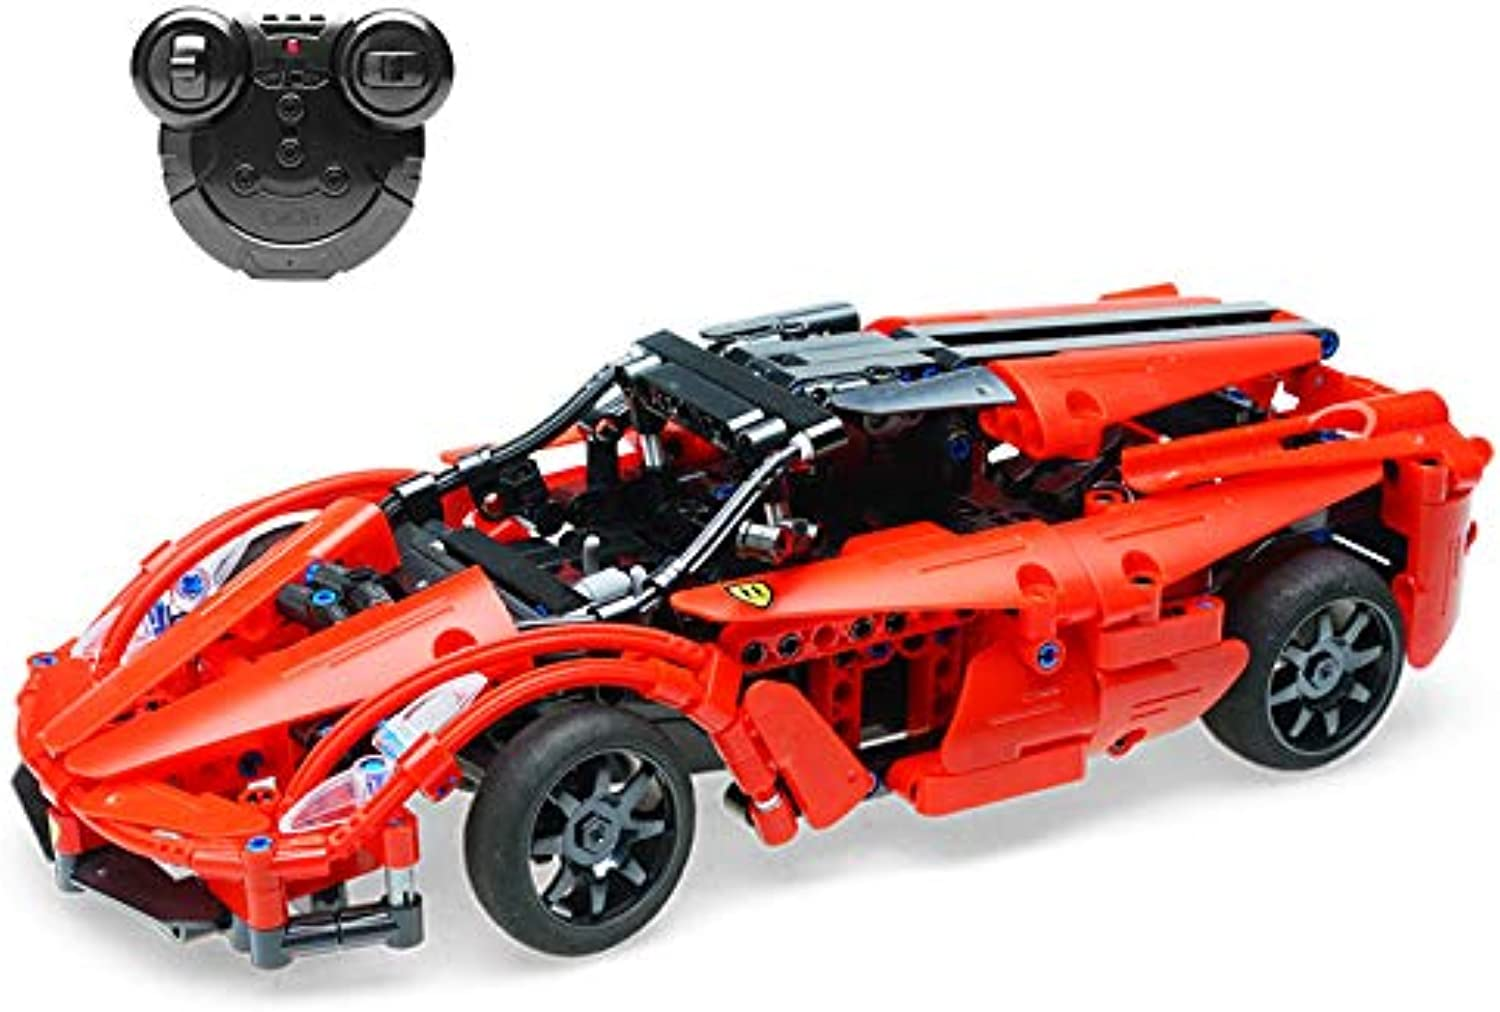 The perseids Remote Control Car Building Blocks Set, 2.4GHz RC Car Model Racing Toy Bricks Kit 380 Pieces  DIY Gift for Kids Youths (Red)